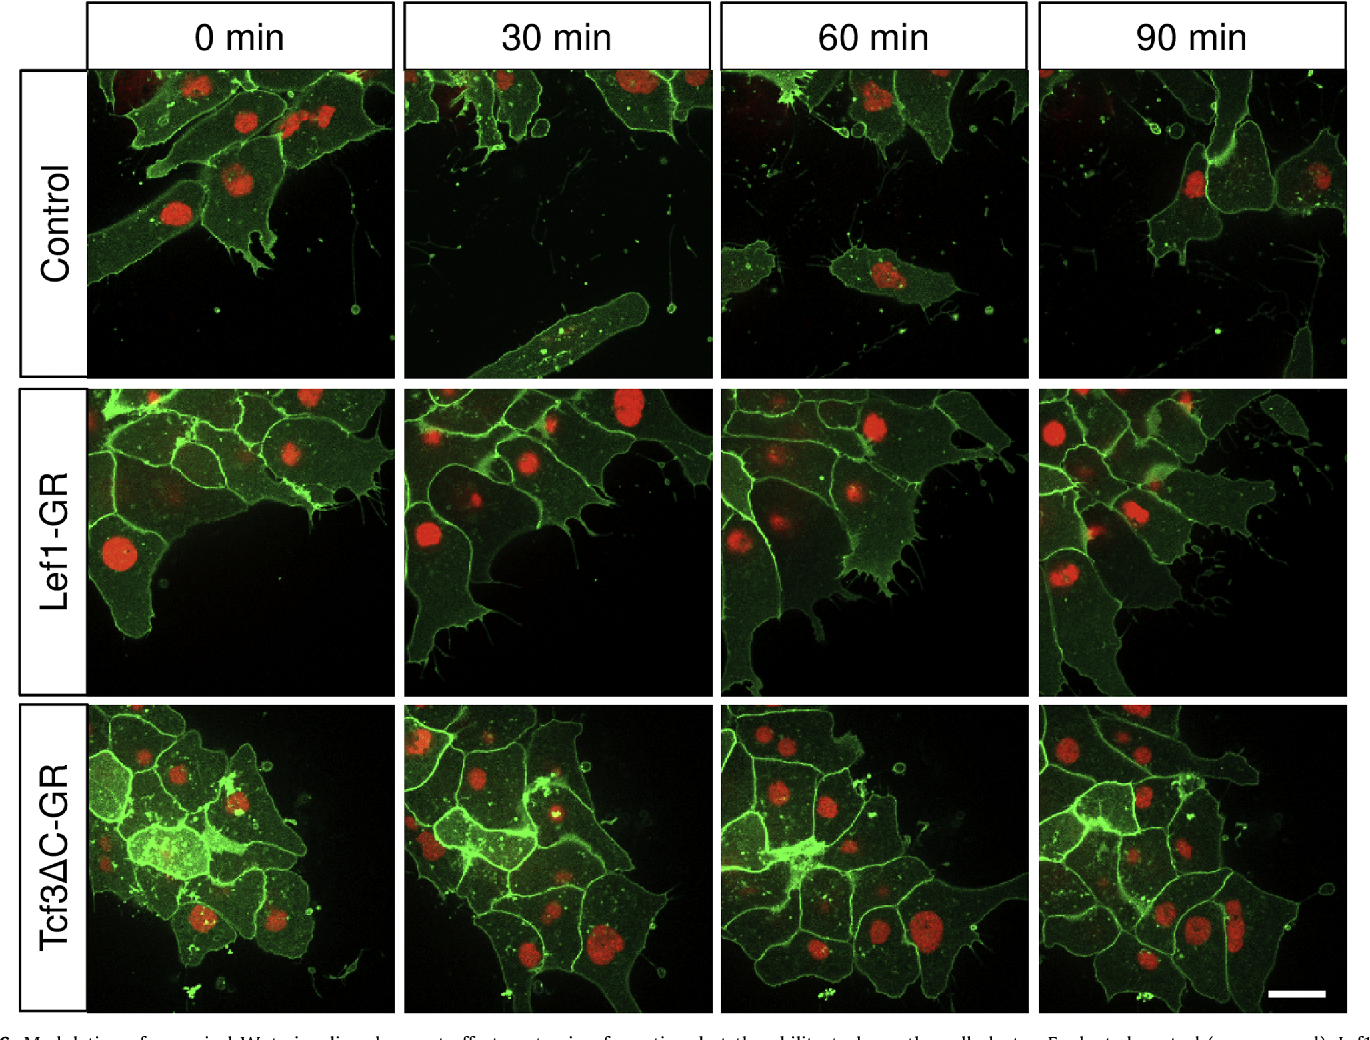 Fig. 6. Modulation of canonical Wnt signaling does not affect protrusion formation, b expressing (middle panel) and Tcf3ΔC-GR expressing (lower panel) NC cells were image after 30, 60 and 90 min of imaging. The scale bar resembles 20 mm.